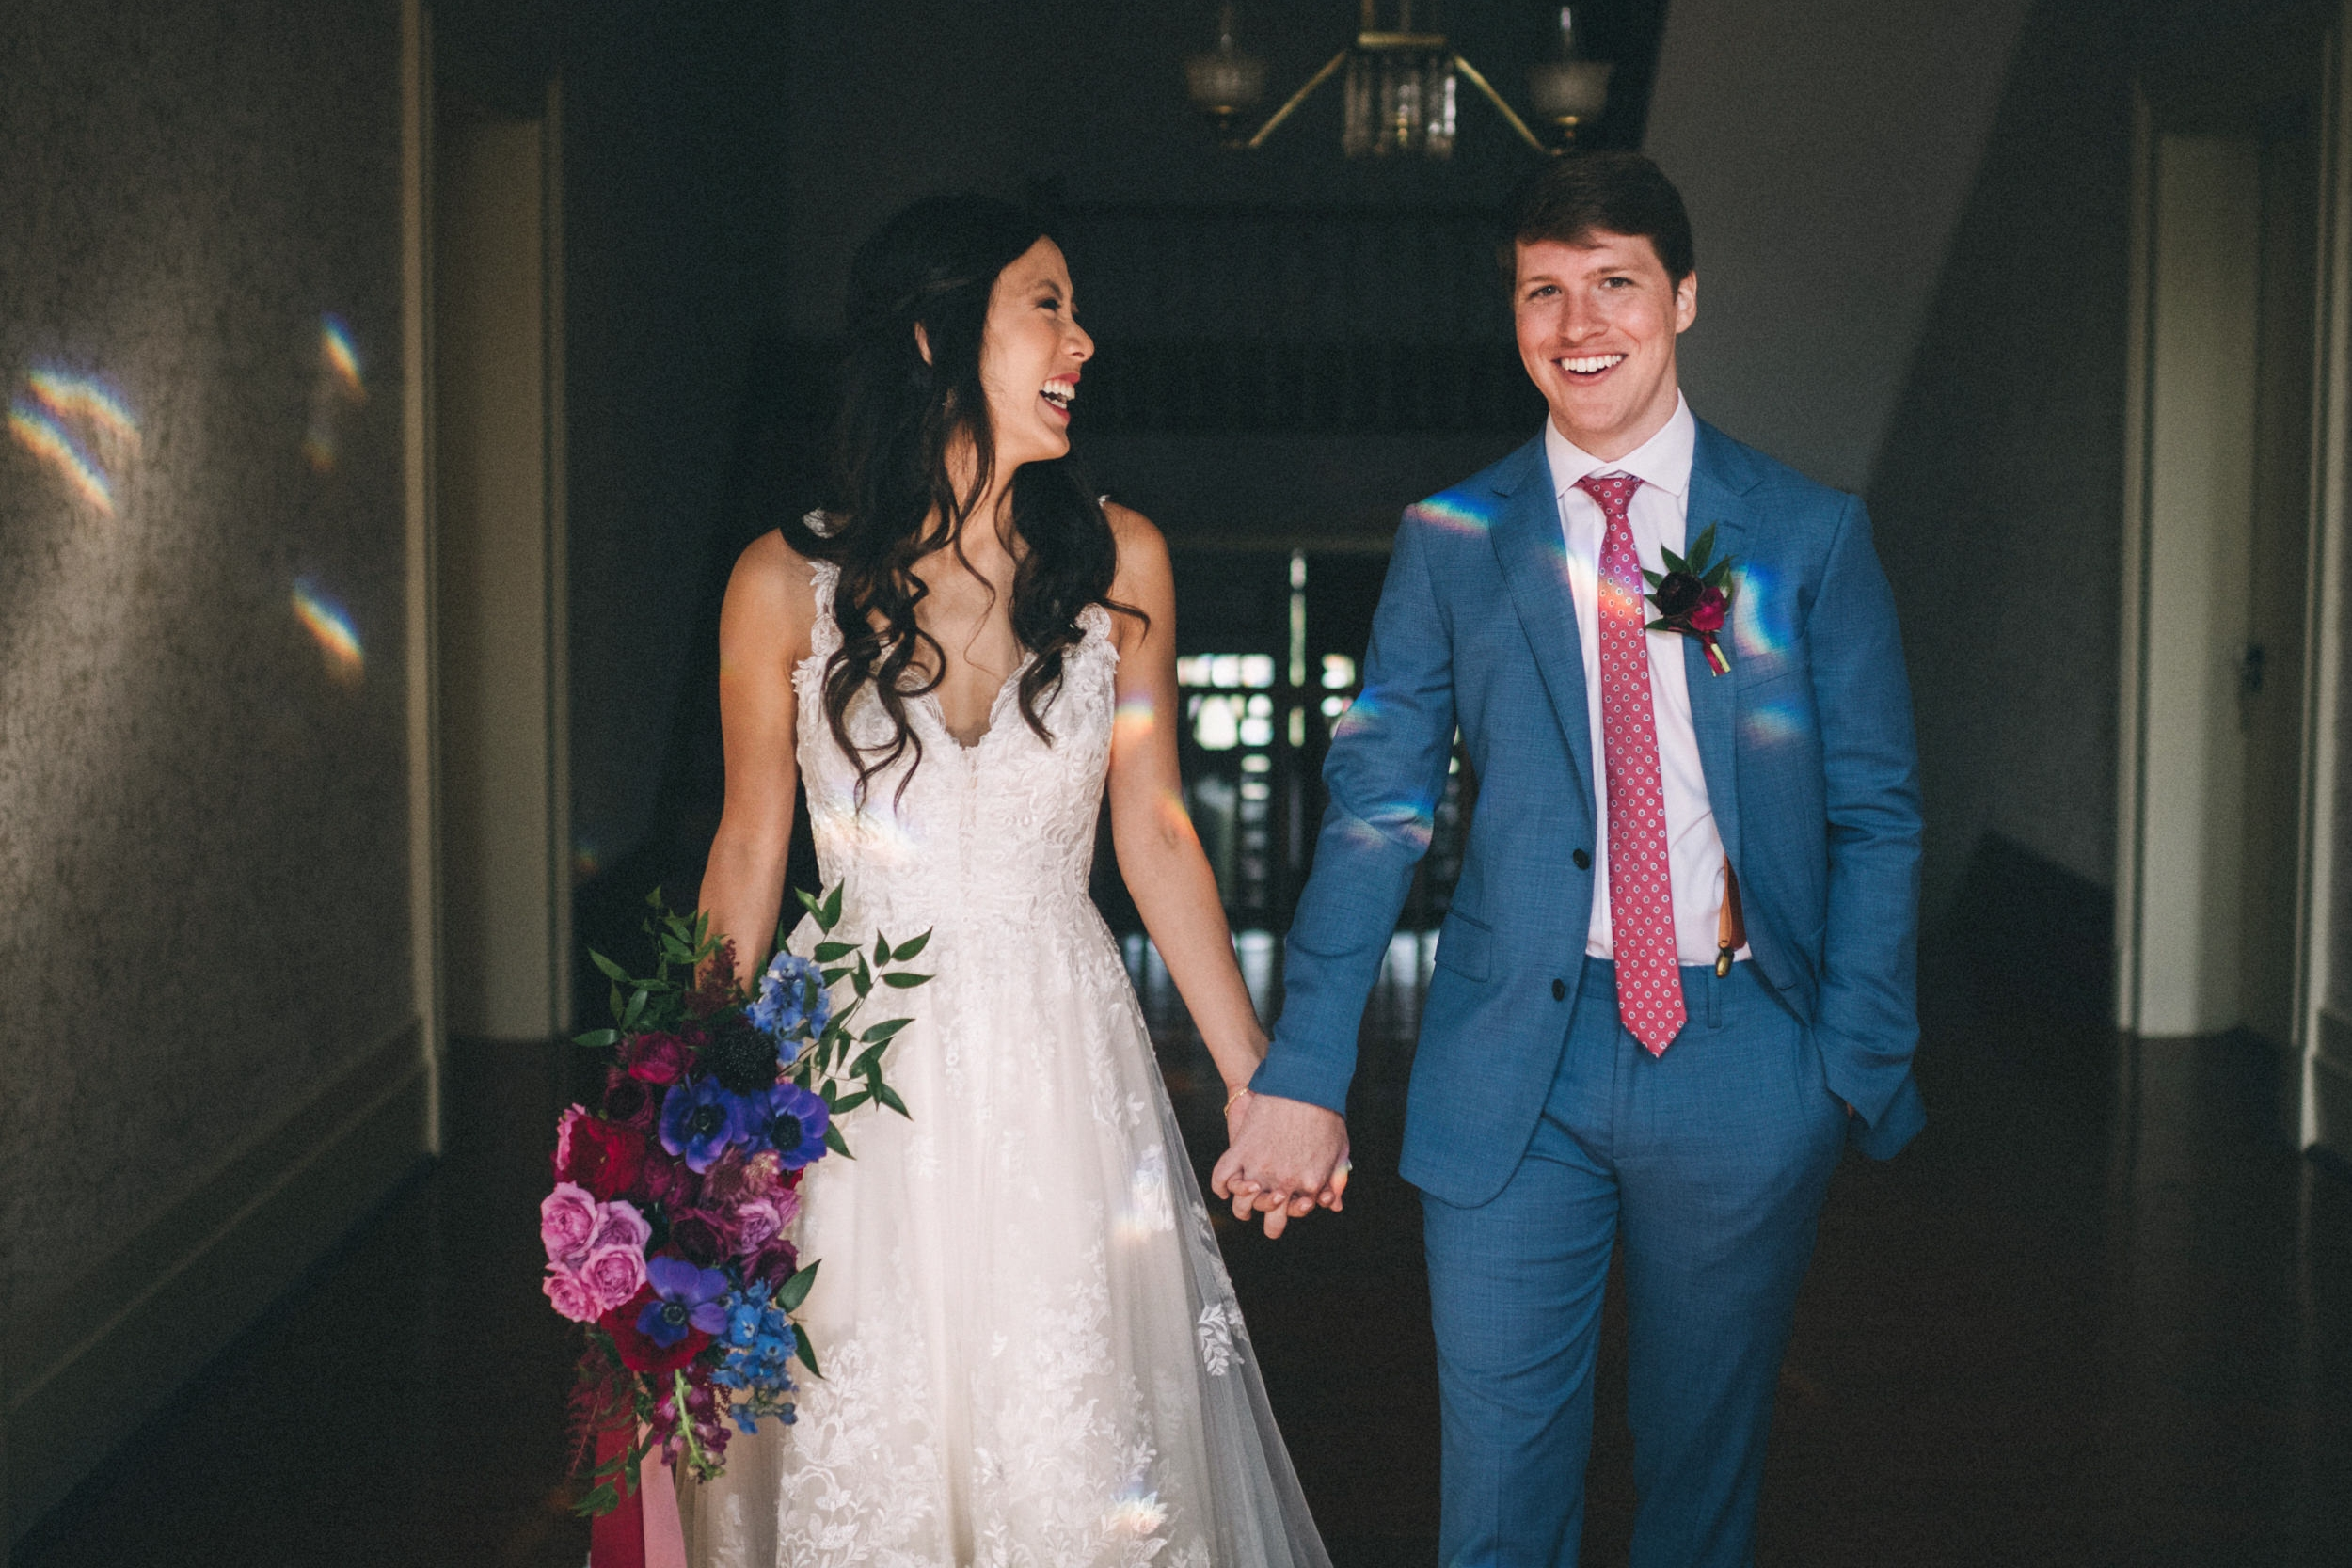 Janice + Quentin - Jewel-Toned Summer Celebration2018